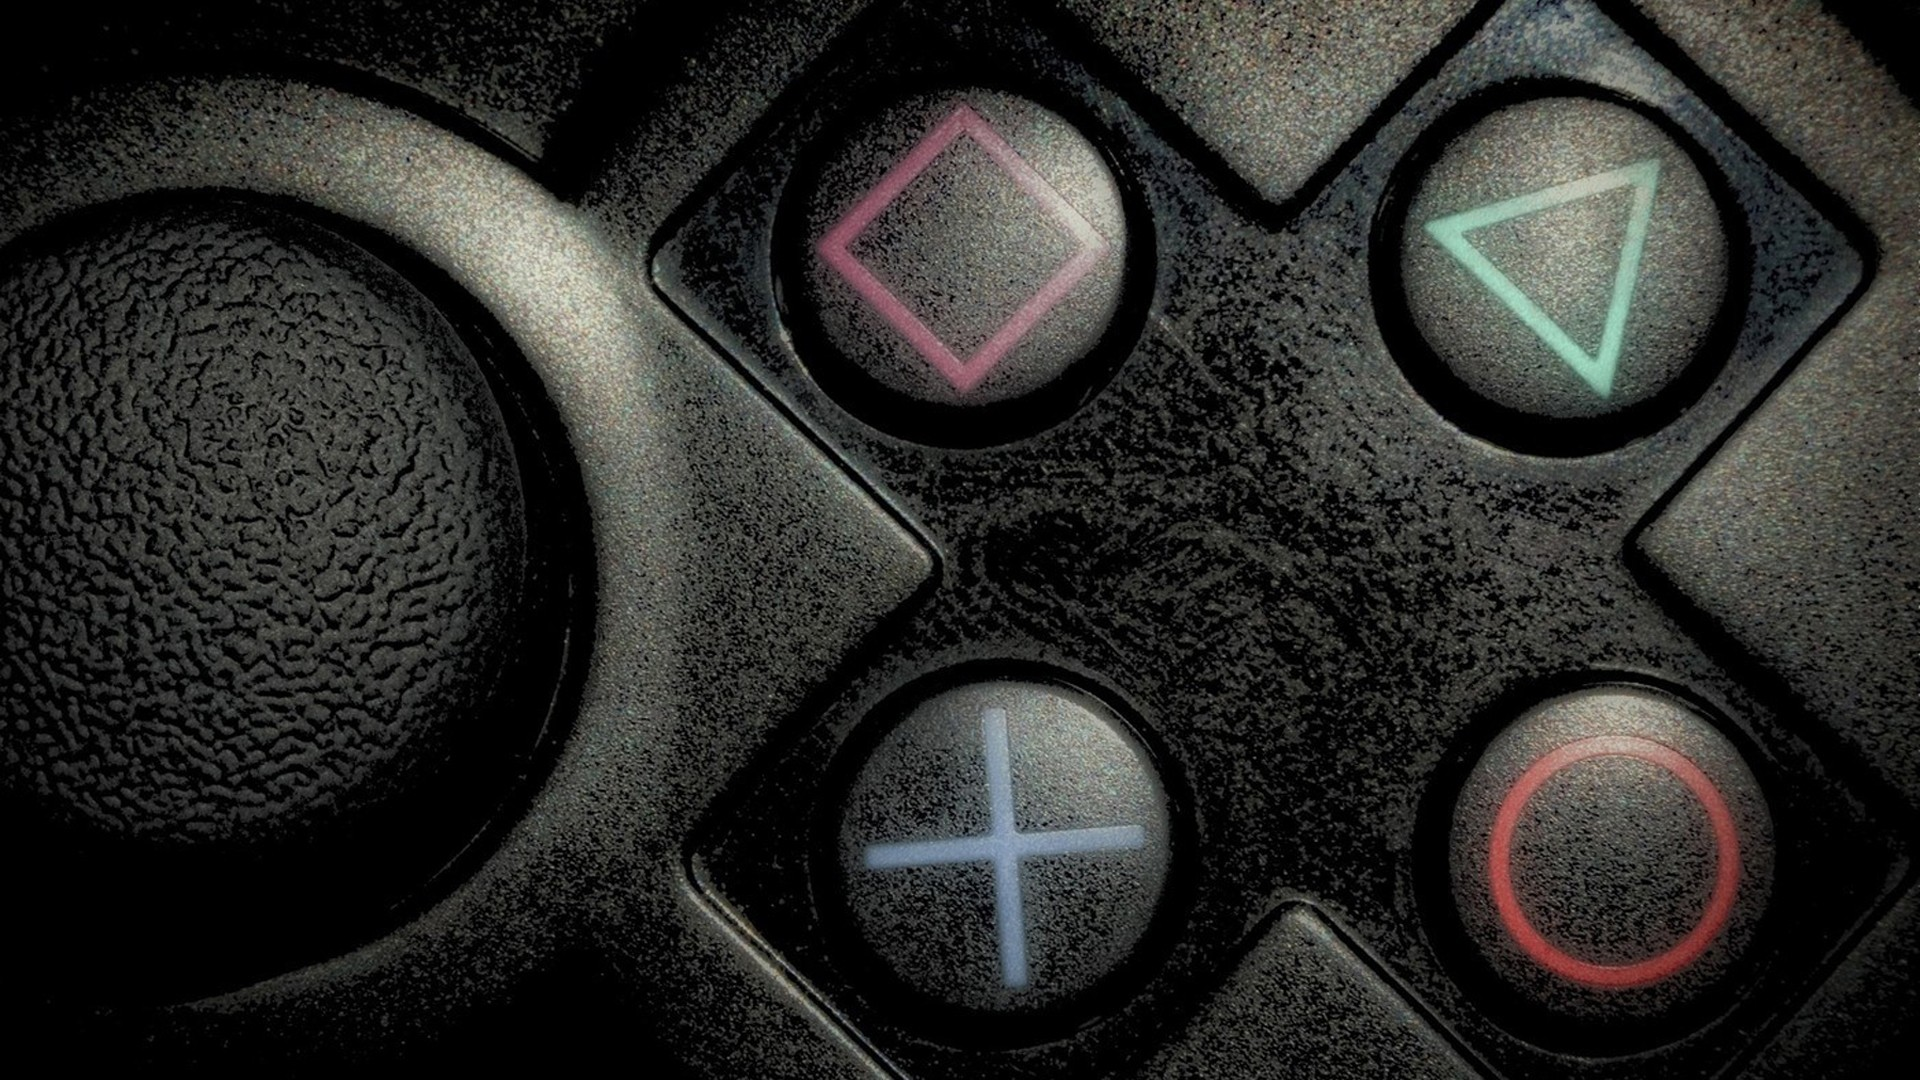 Gamer Thug Controller Hd Wallpapers: Video Games PlayStation Buttons Controllers Playstation 2